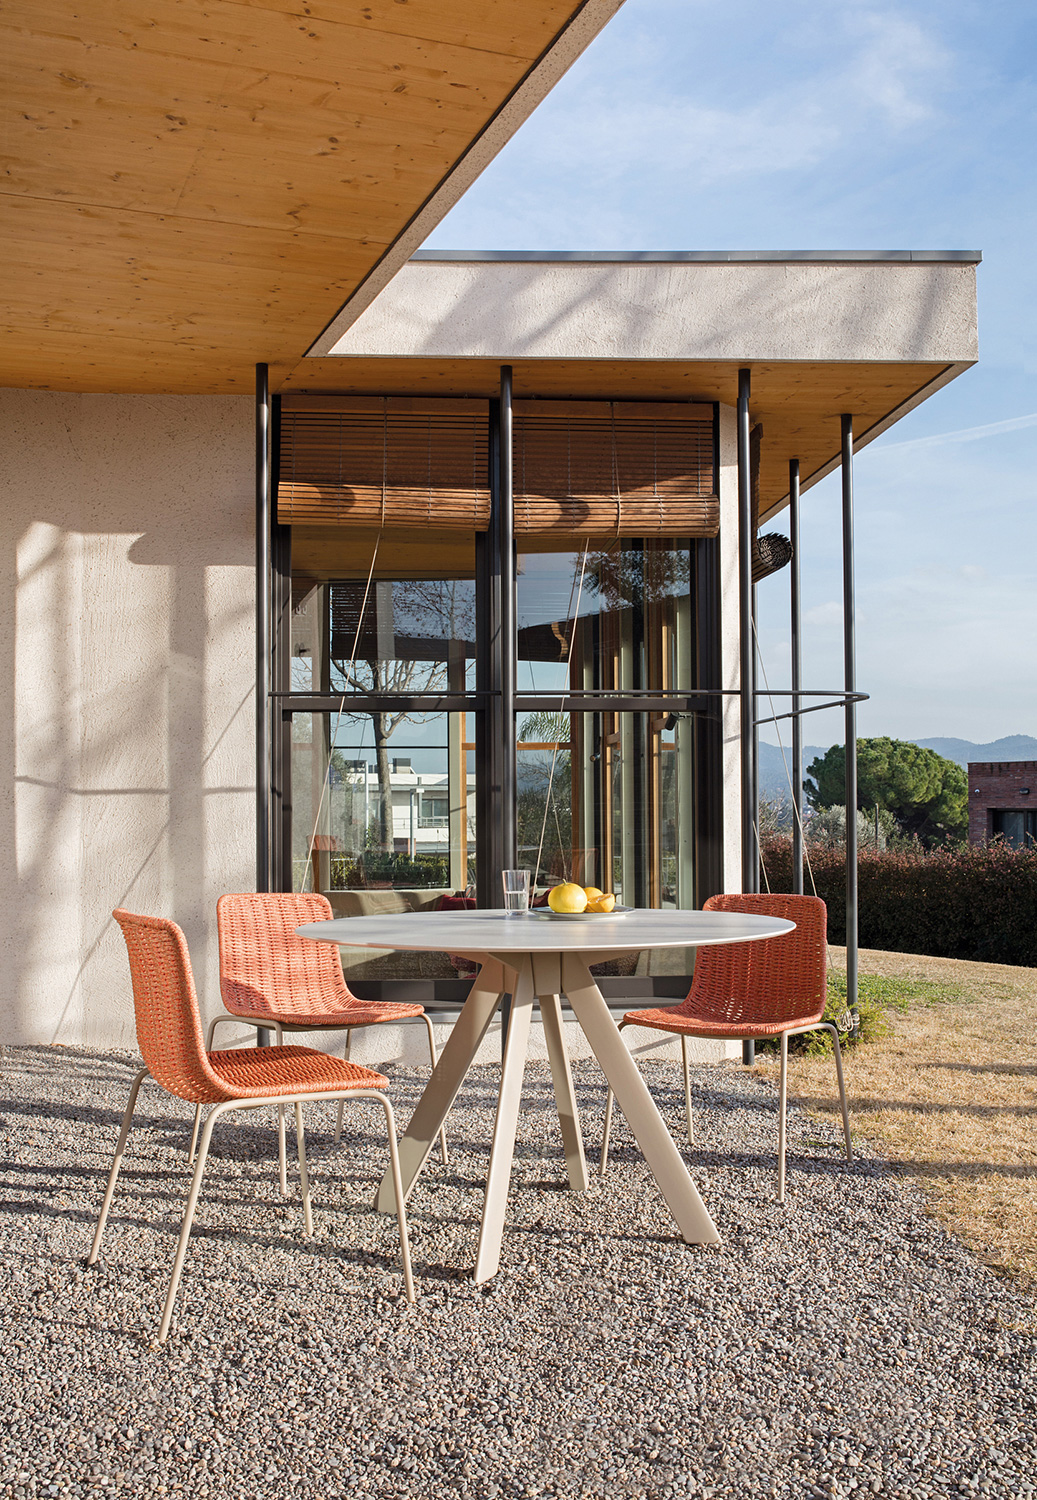 Expormim-furniture-outdoor-atrivm-round-dining-table-120-02-6